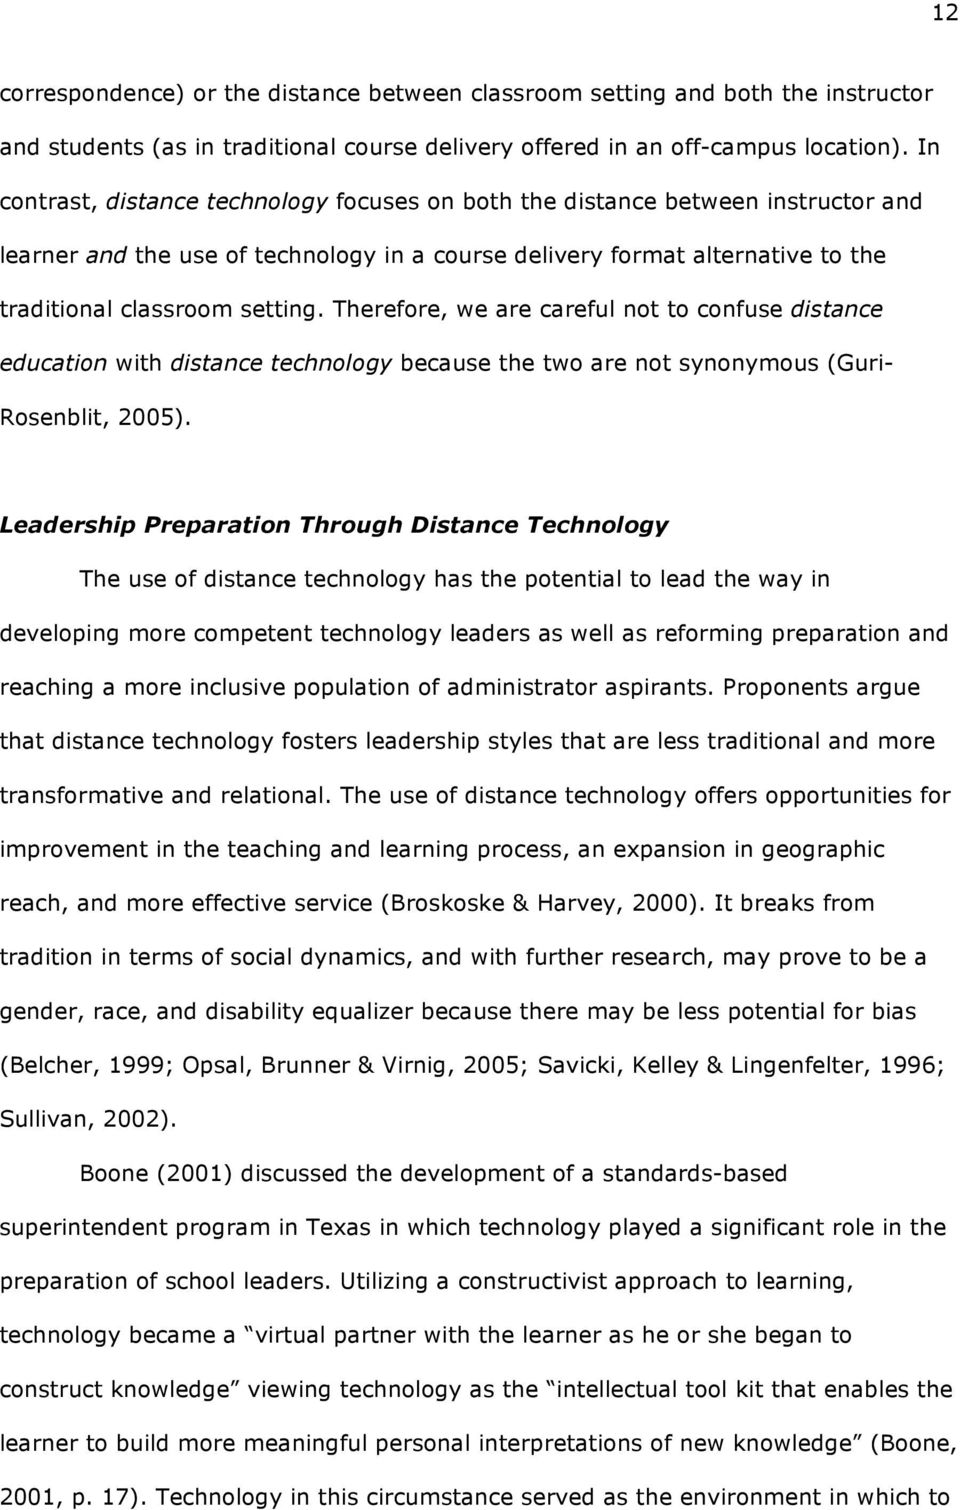 Therefore, we are careful not to confuse distance education with distance technology because the two are not synonymous (Guri- Rosenblit, 2005).